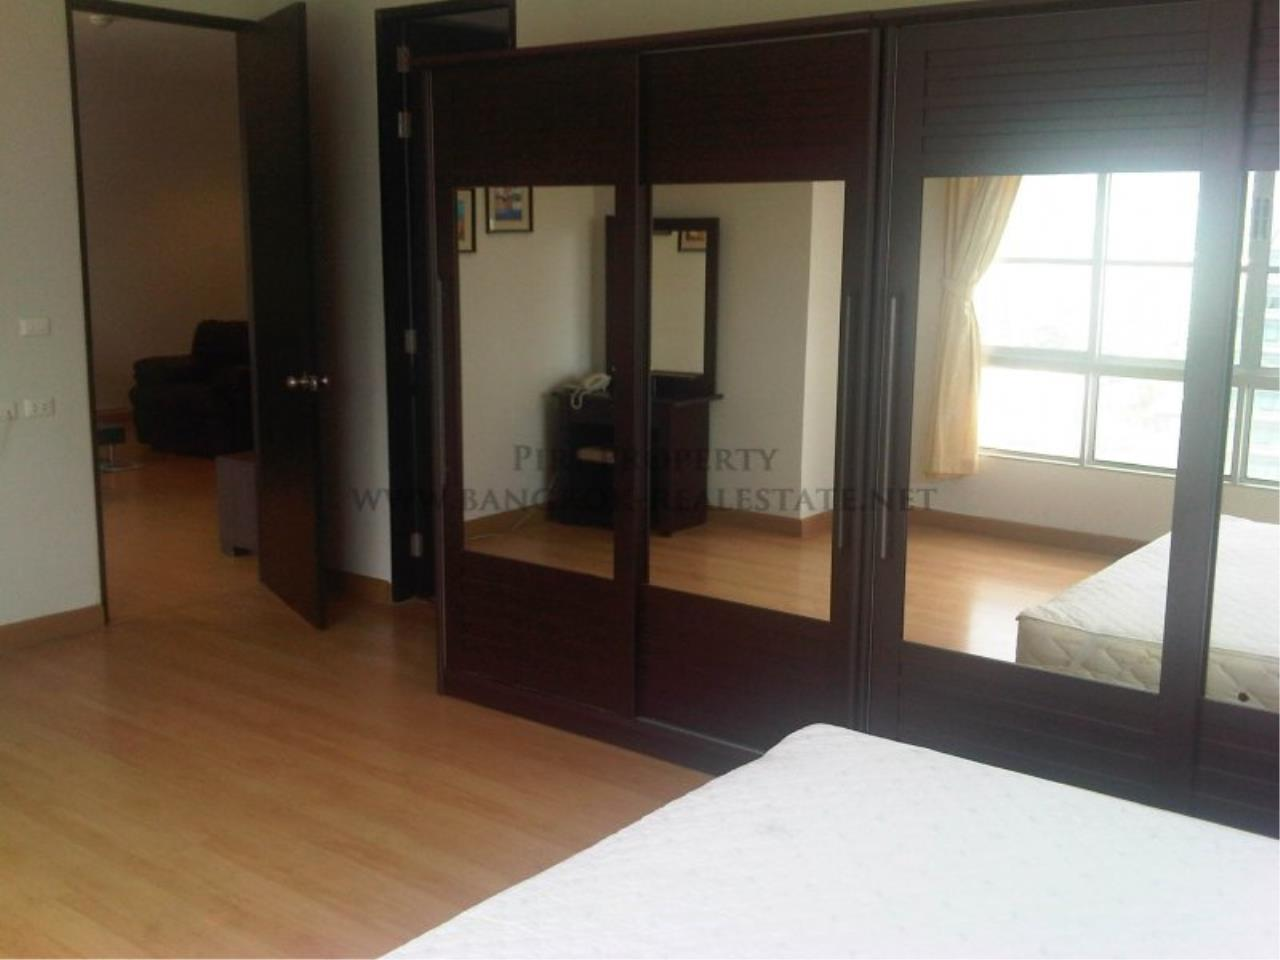 Piri Property Agency's 3 Bedroom Penthouse Unit - AP Citismart for Rent 7